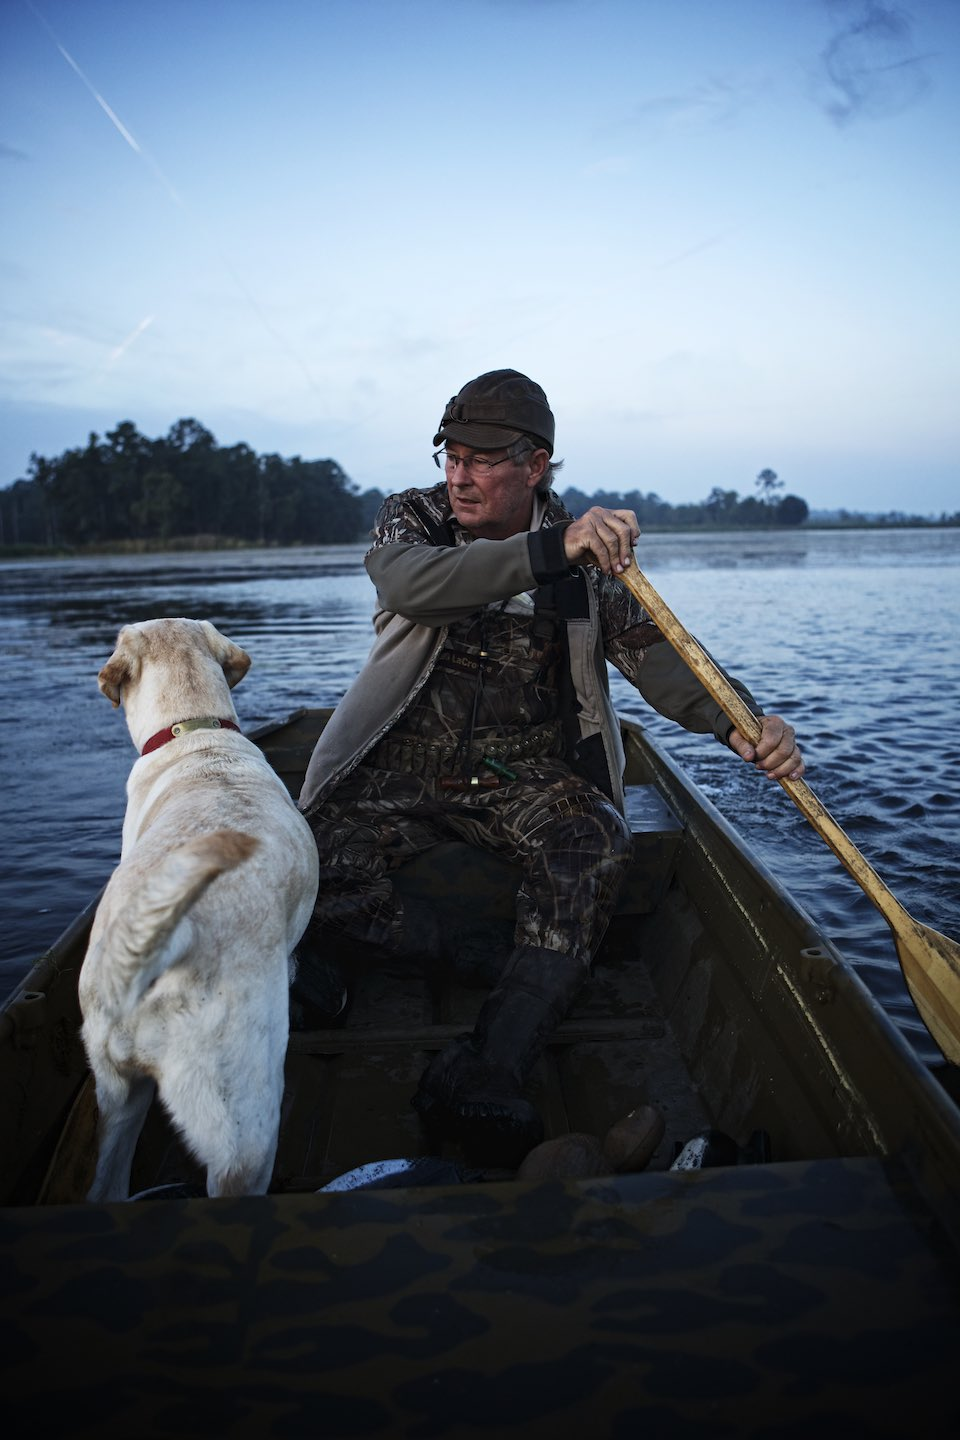 Man and his dog canoeing on a lake at evening time.